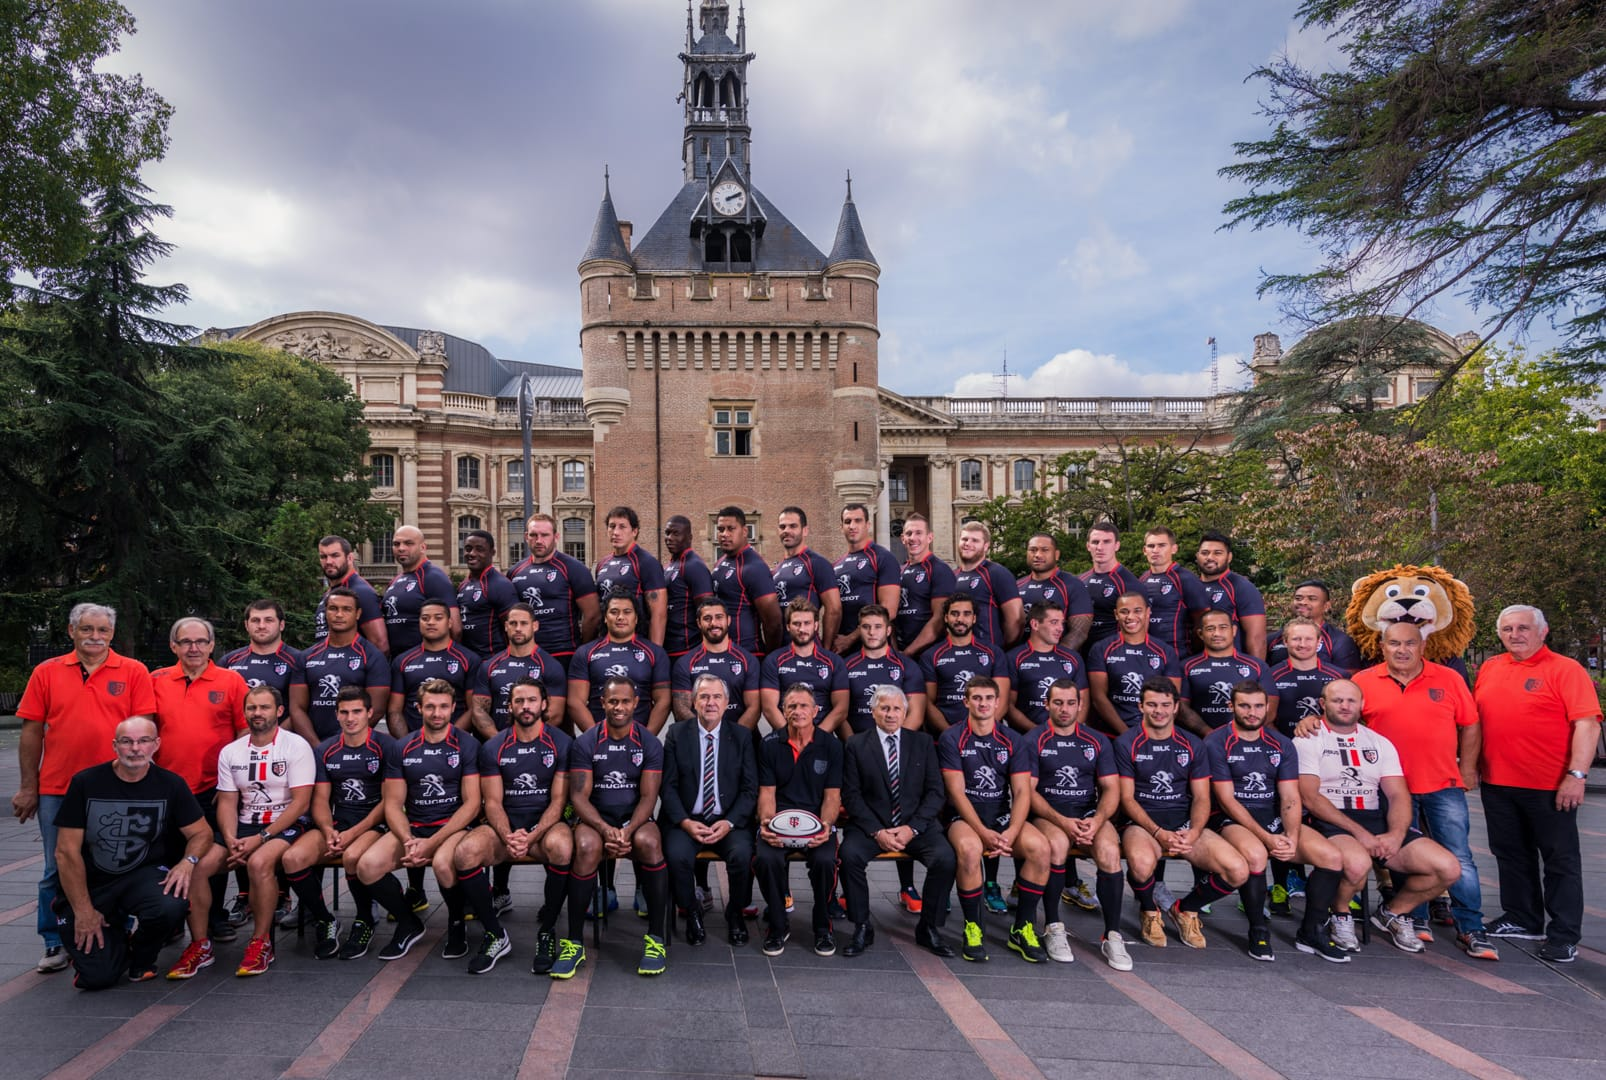 Photo officielle Stade Toulousain 2015 - Place du capitole